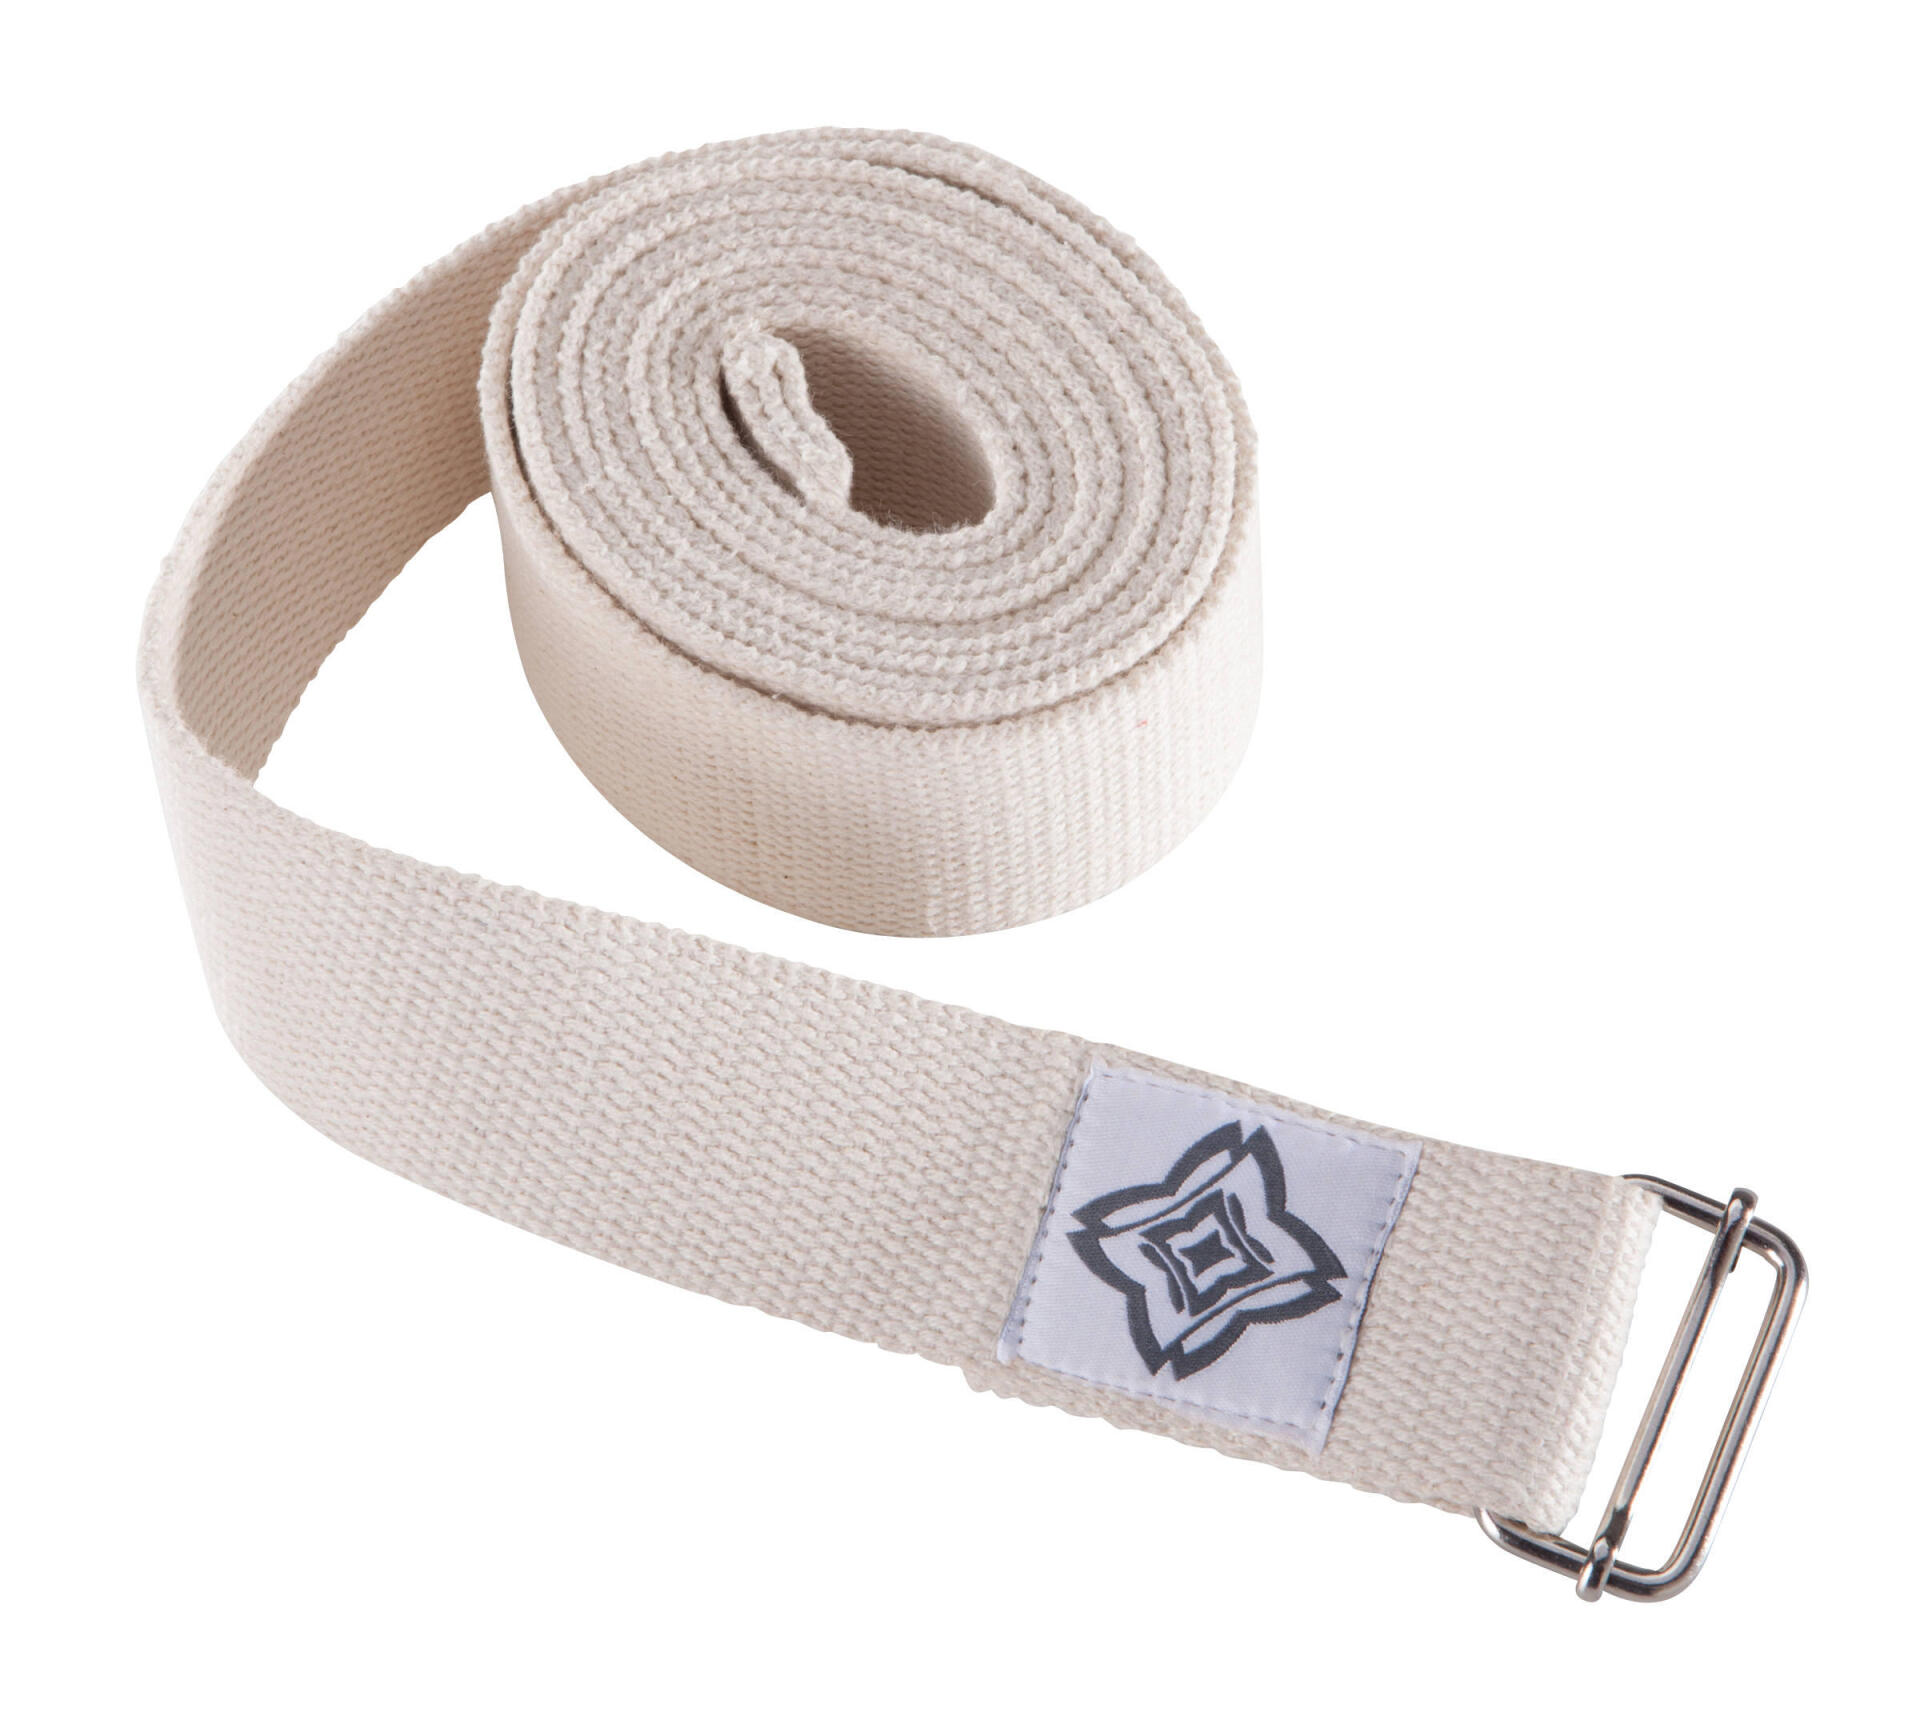 Yoga | Level up your yoga pose with: yoga strap